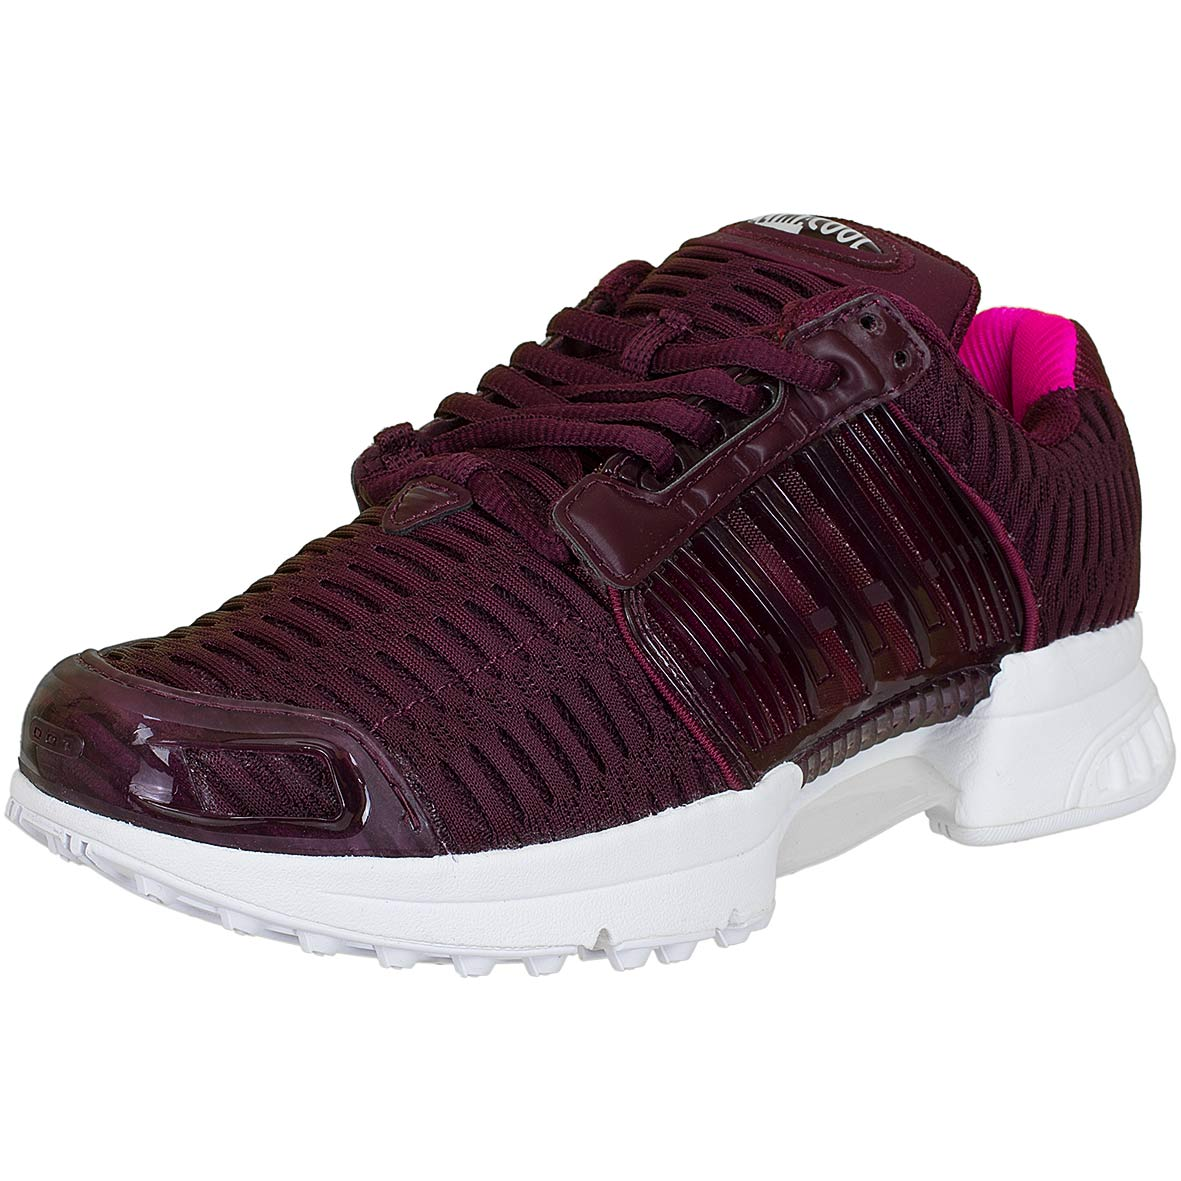 competitive price 6a167 a57f4 adidas Clima Cool 1 W Maroon Maroon Pink 40